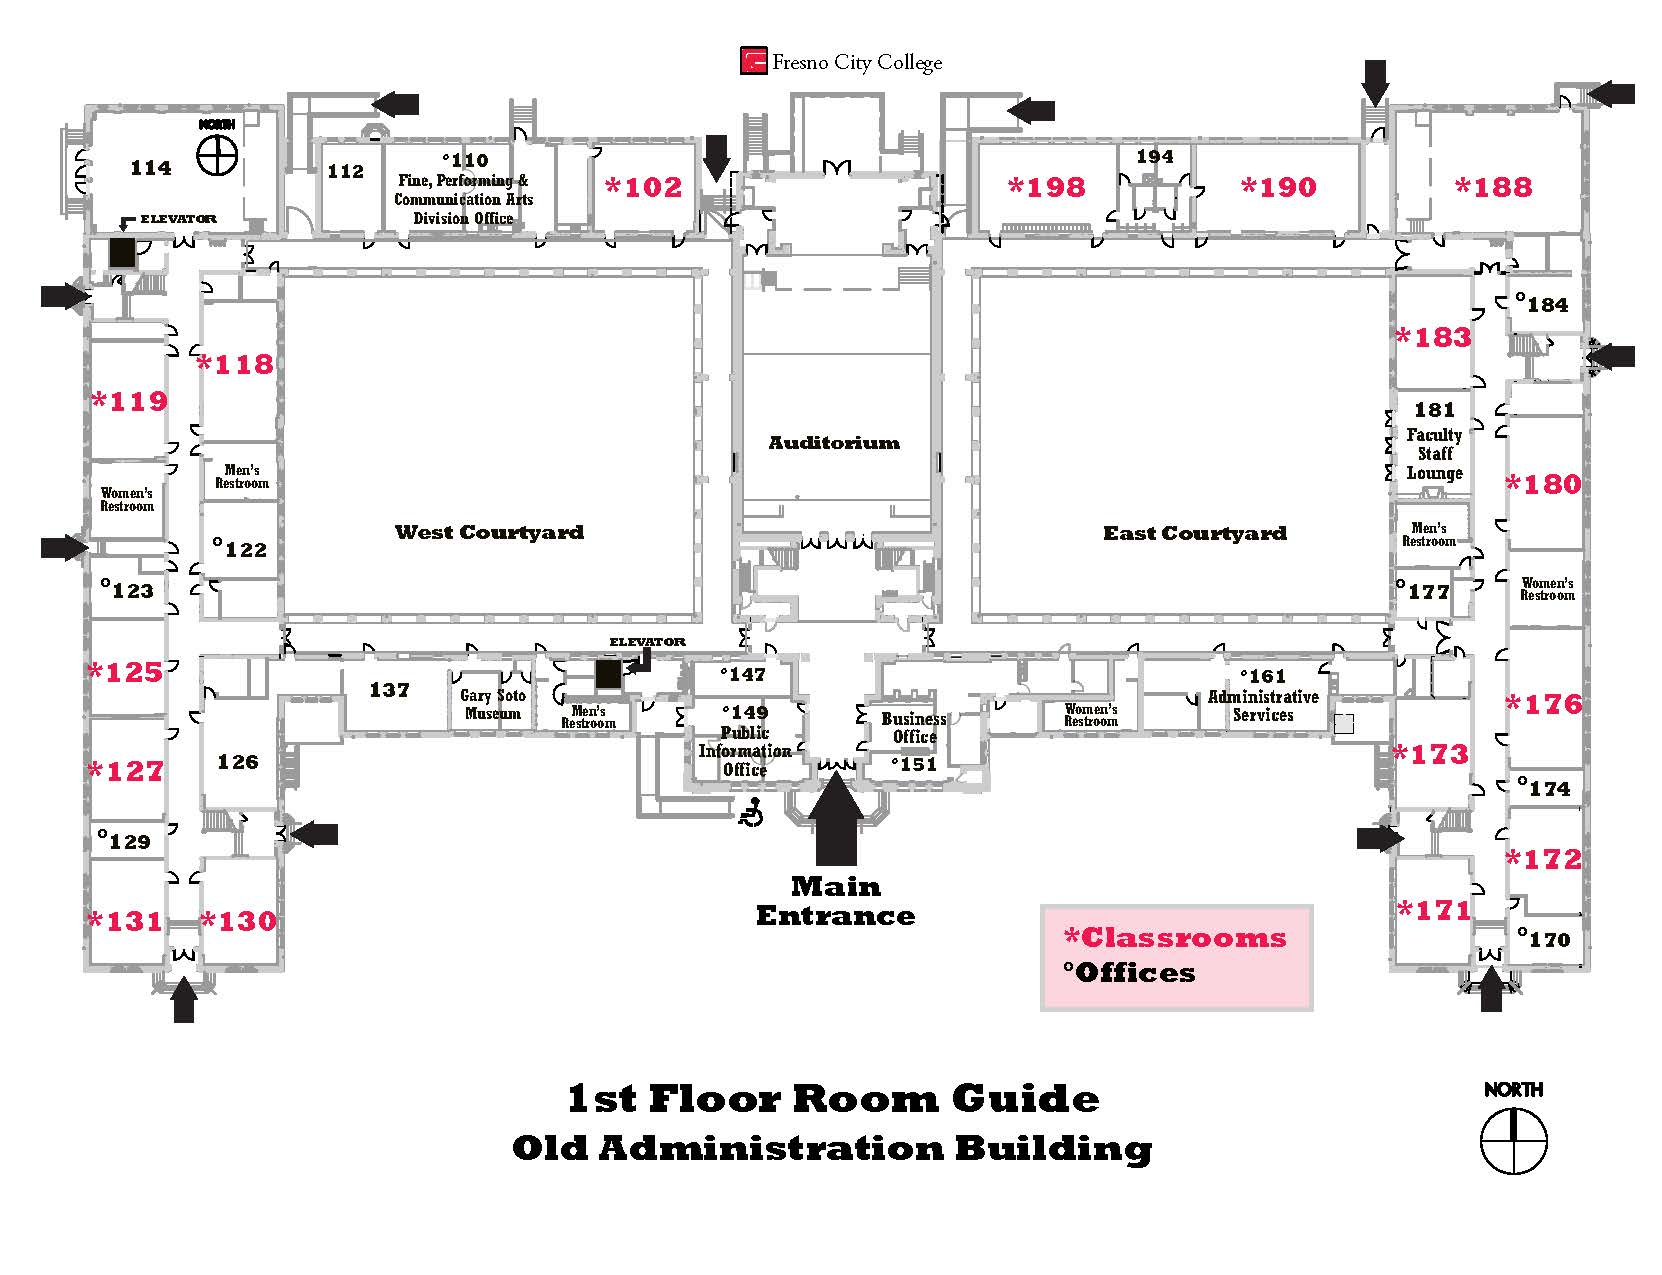 OAB first floor map